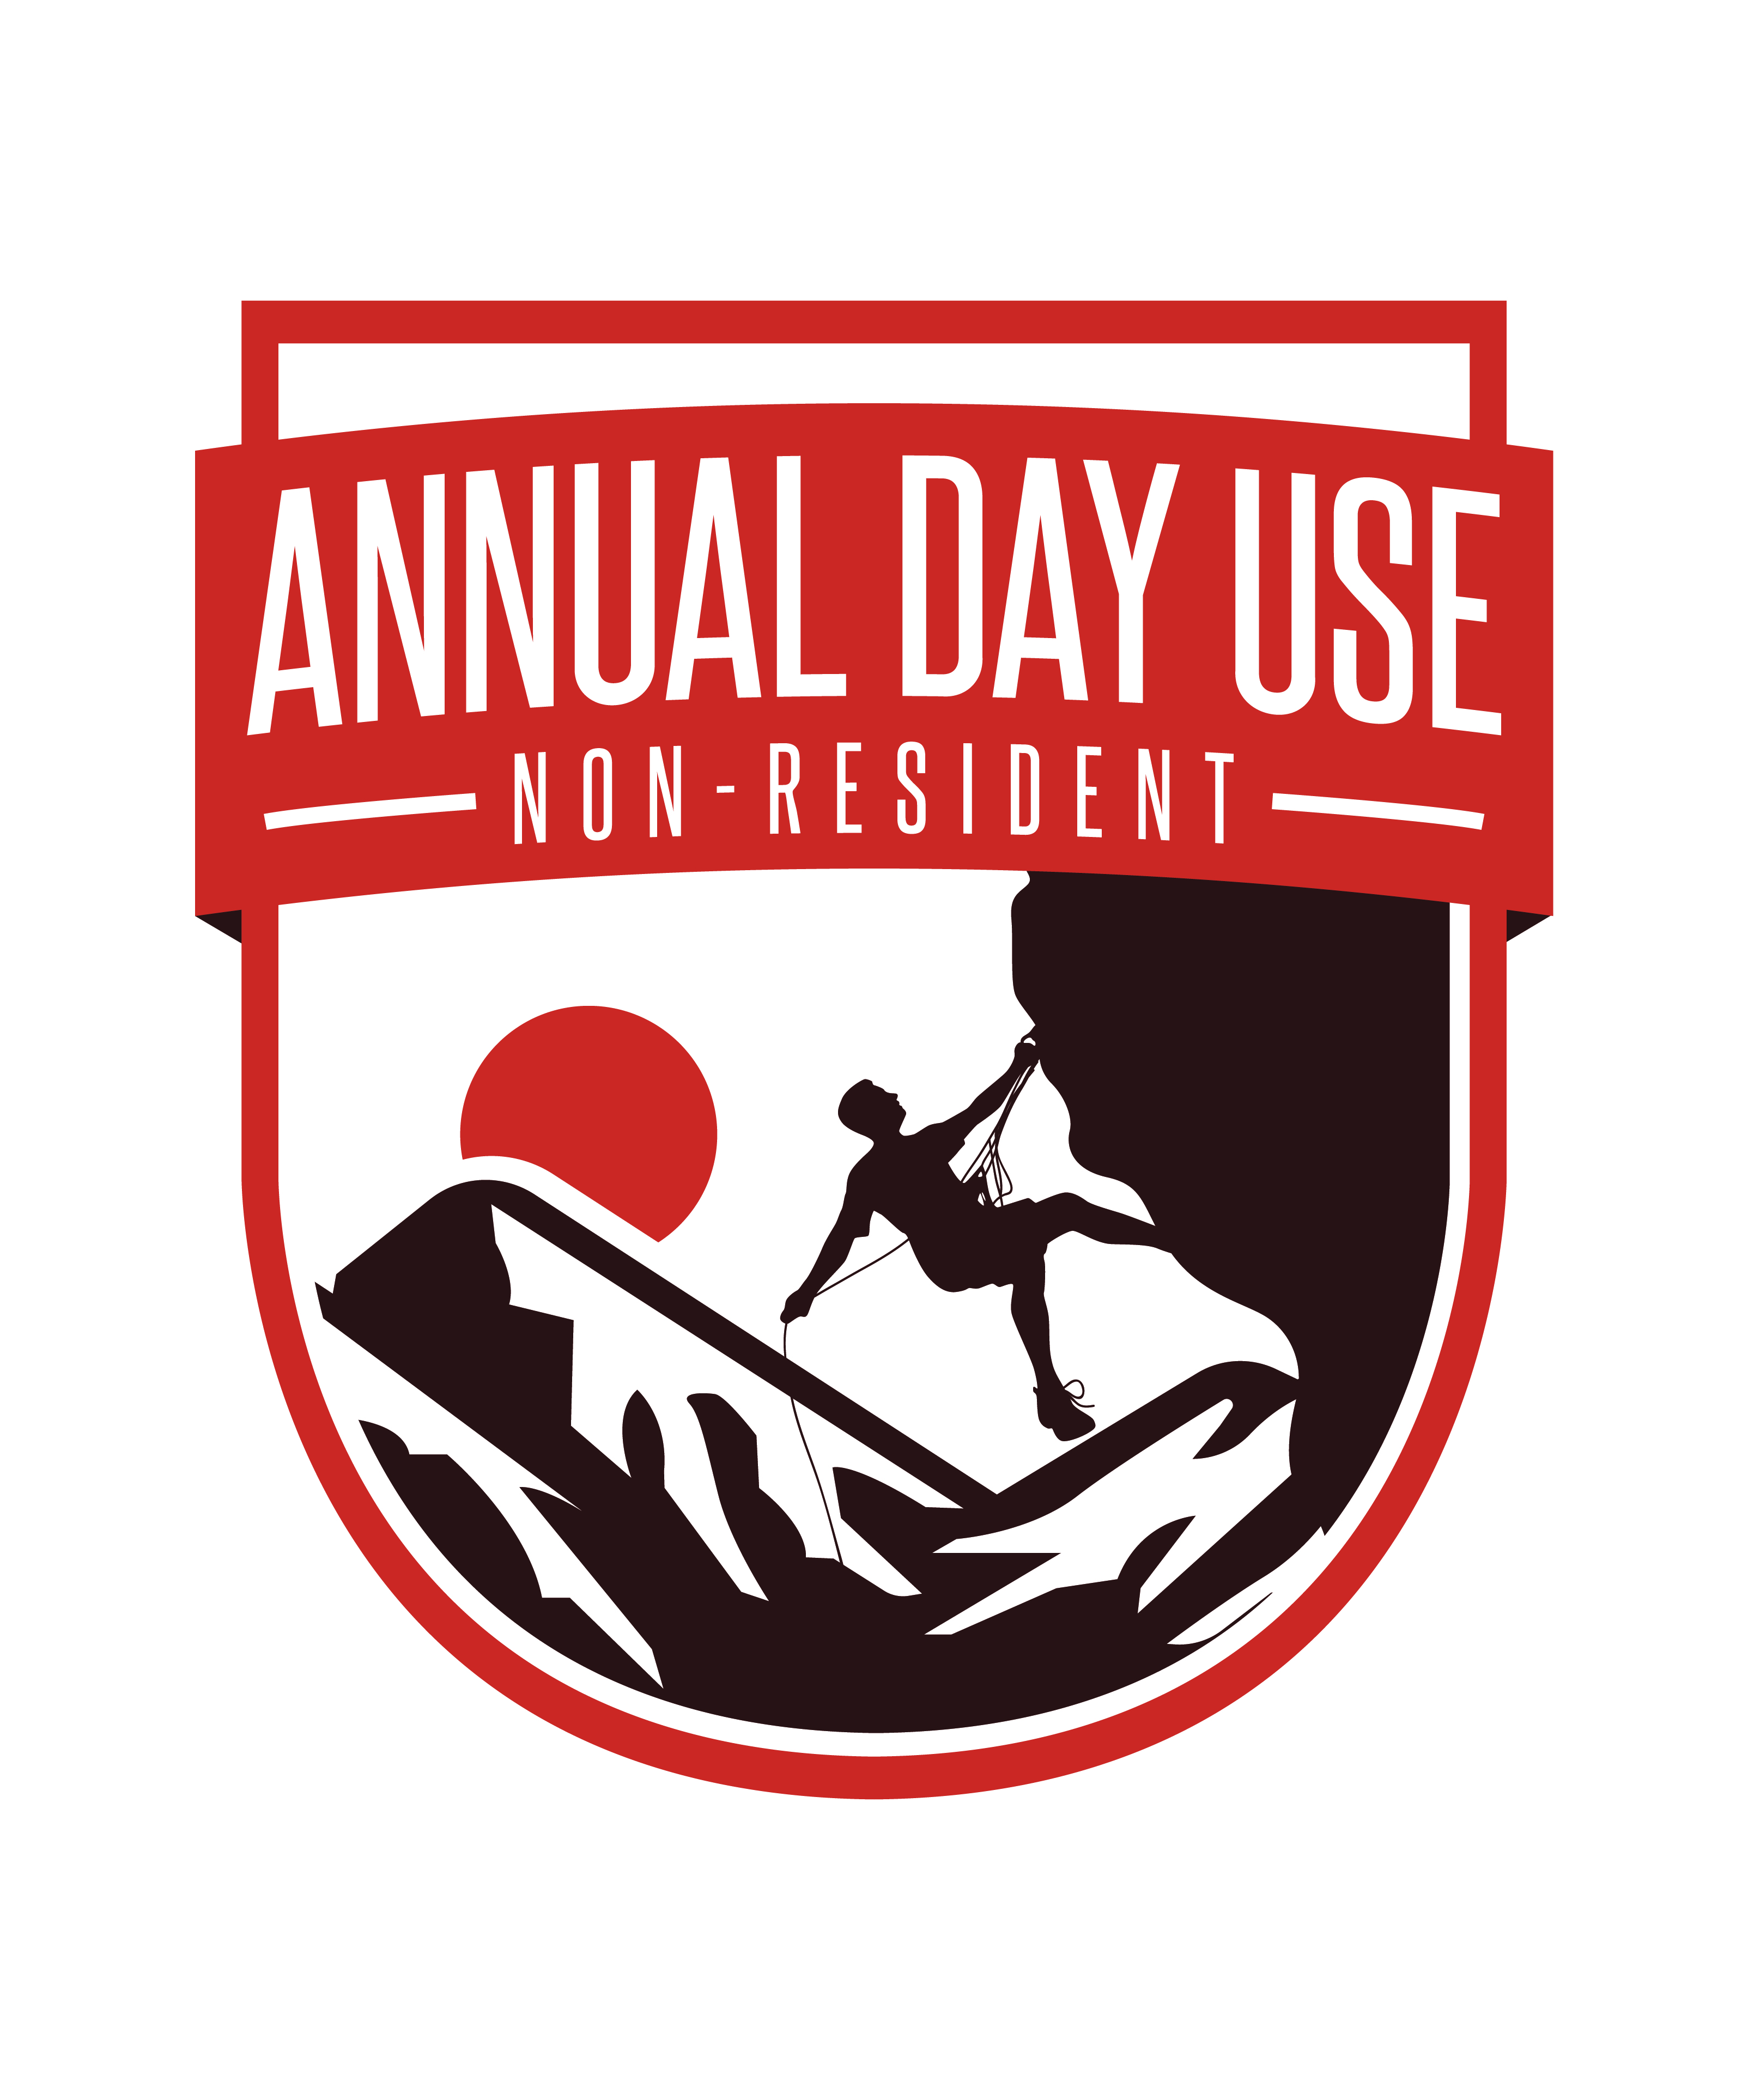 2018 Annual Day Use - Non-Resident